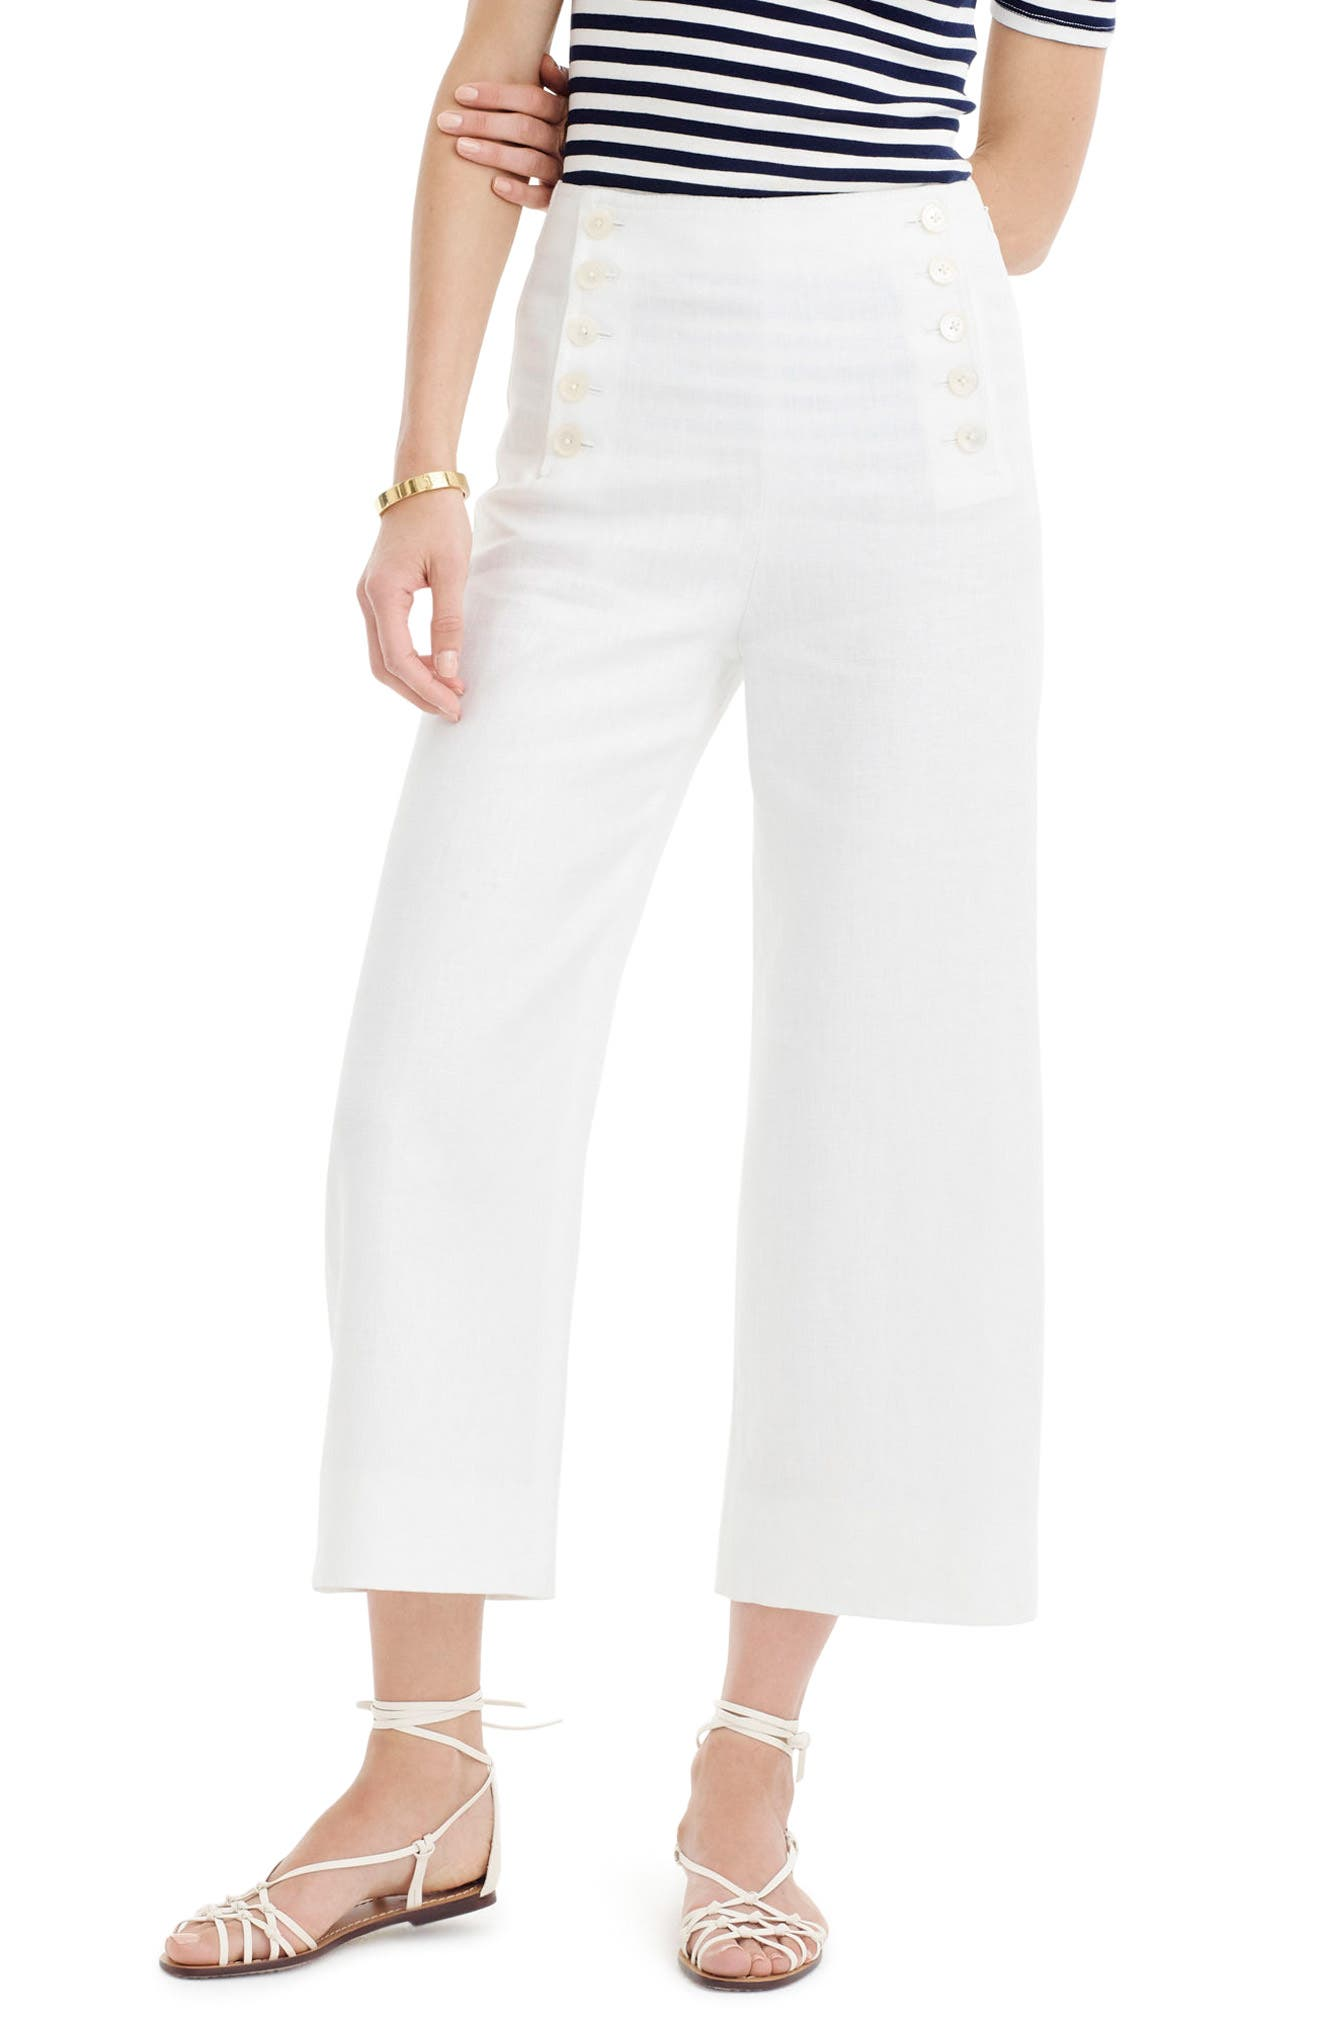 J.Crew Heavy Linen Sailor Pants (Regular & Petite)